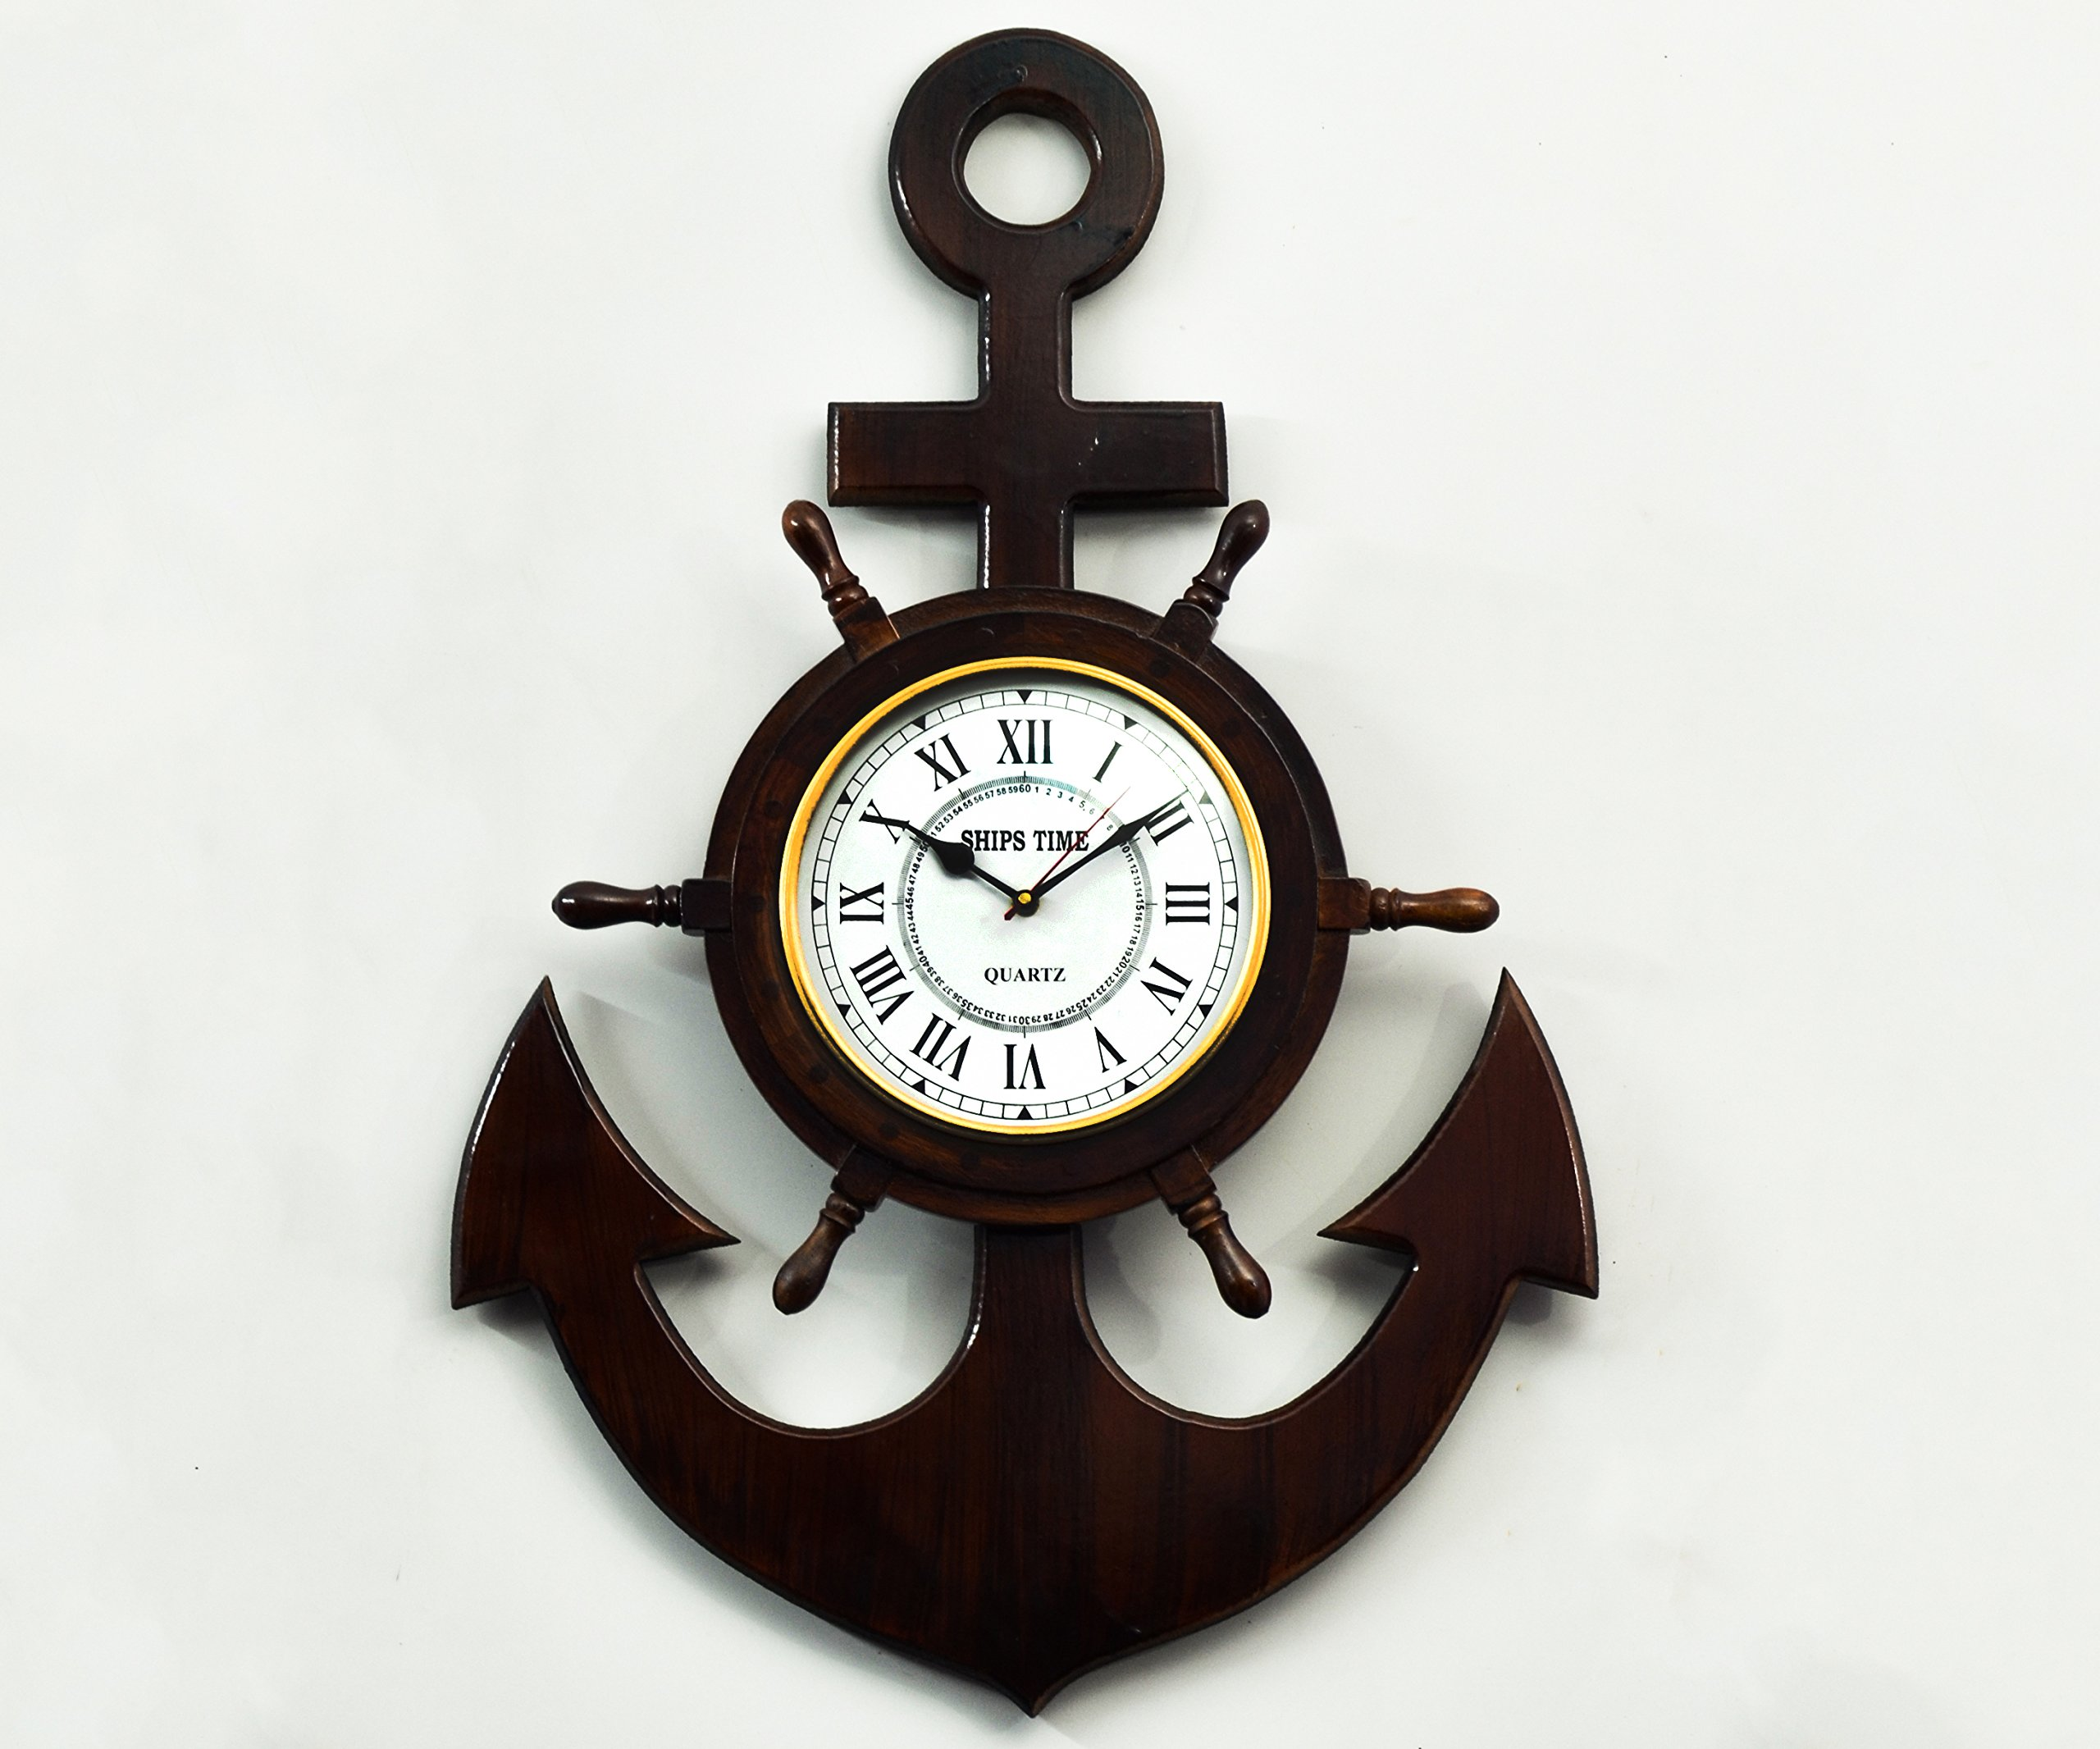 Handcrafted Anchor Wooden Ship Wheel for Wall Decor/Clock by STAR INDIA CRAFT - Wooden Ship Wheel with Premium 8'' Roman Dial, Indian Rosewood (30'' x 20'' x 3.25'') Inches